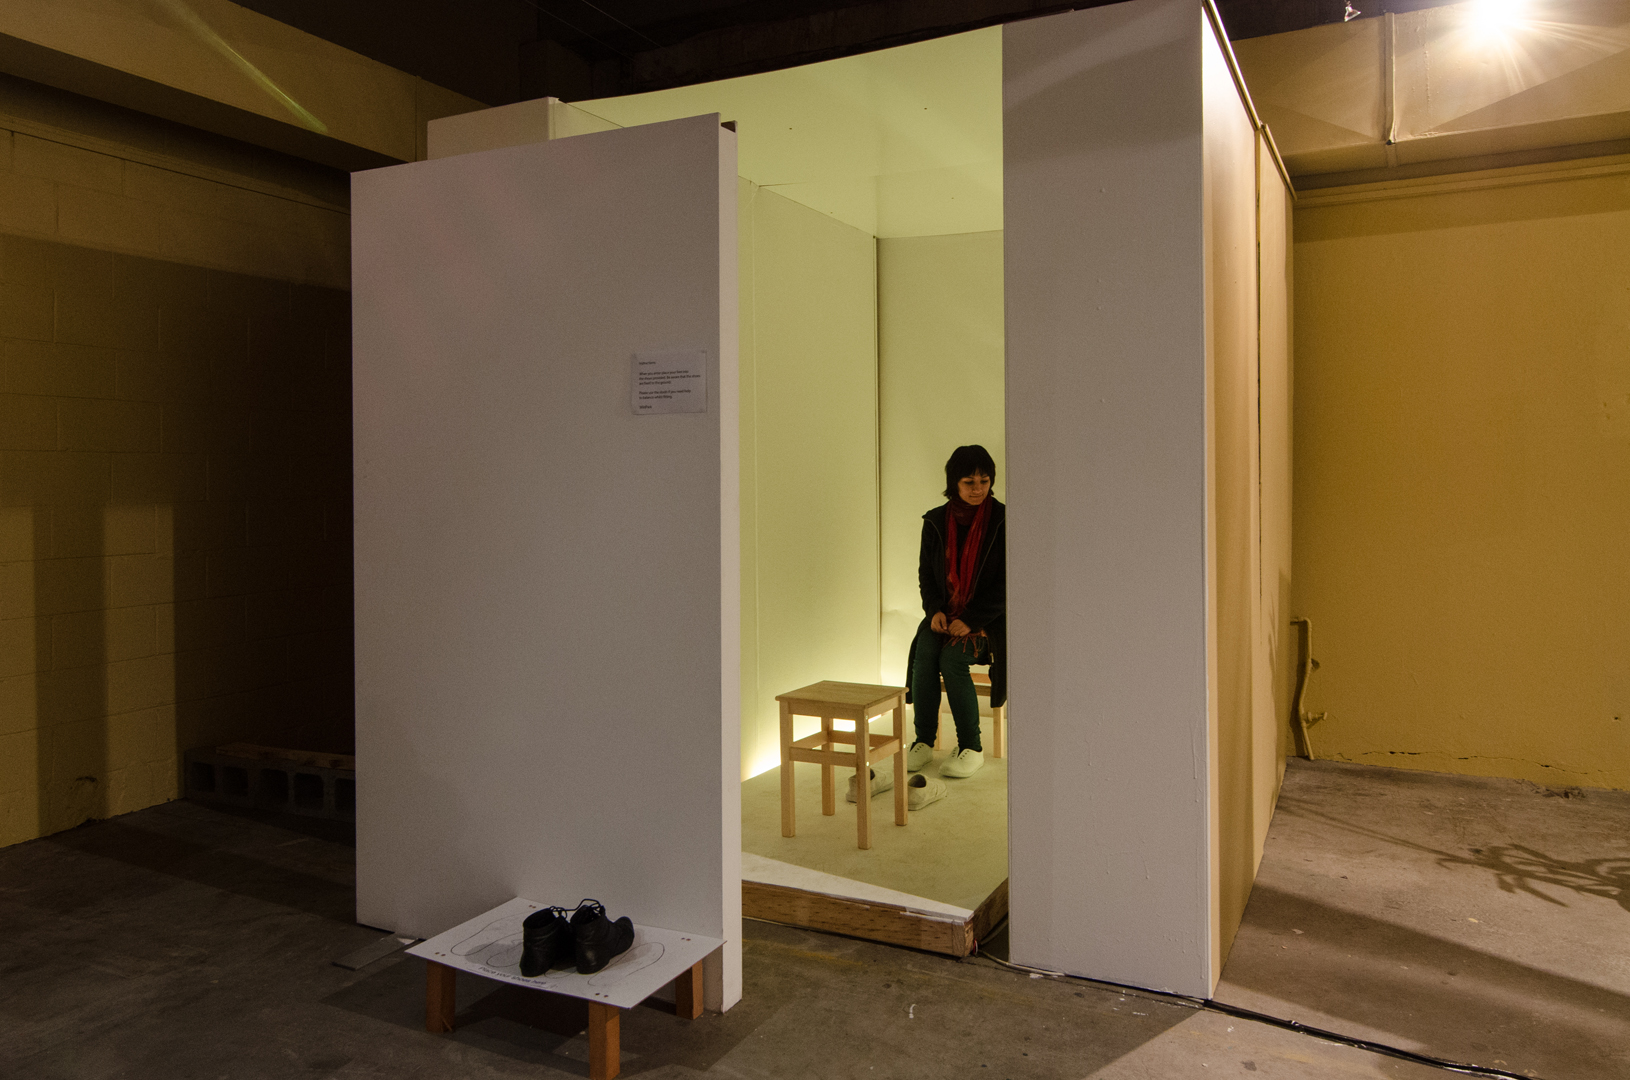 ©, Yiwon Park and Peter Wildman, The Trans-Emotion Room (2013)